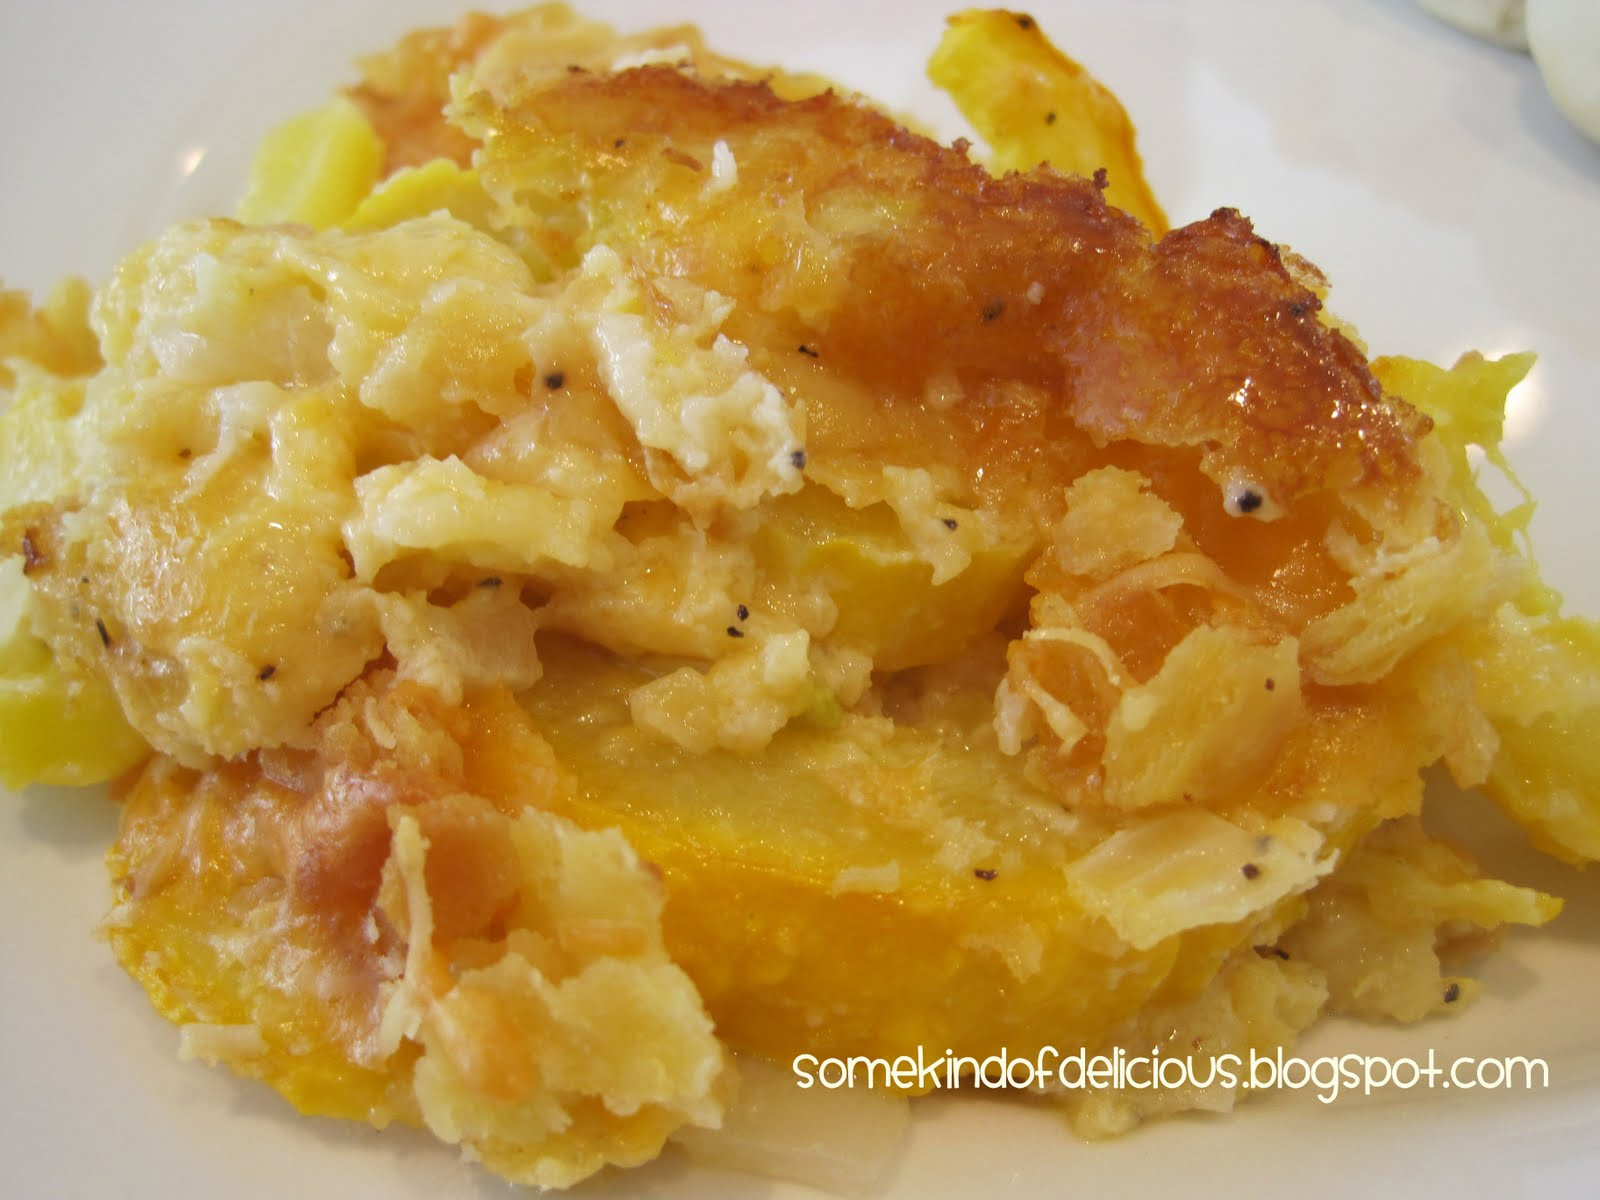 Yellow Squash Casserole Recipes  Some Kind of Delicious Yellow Squash Casserole